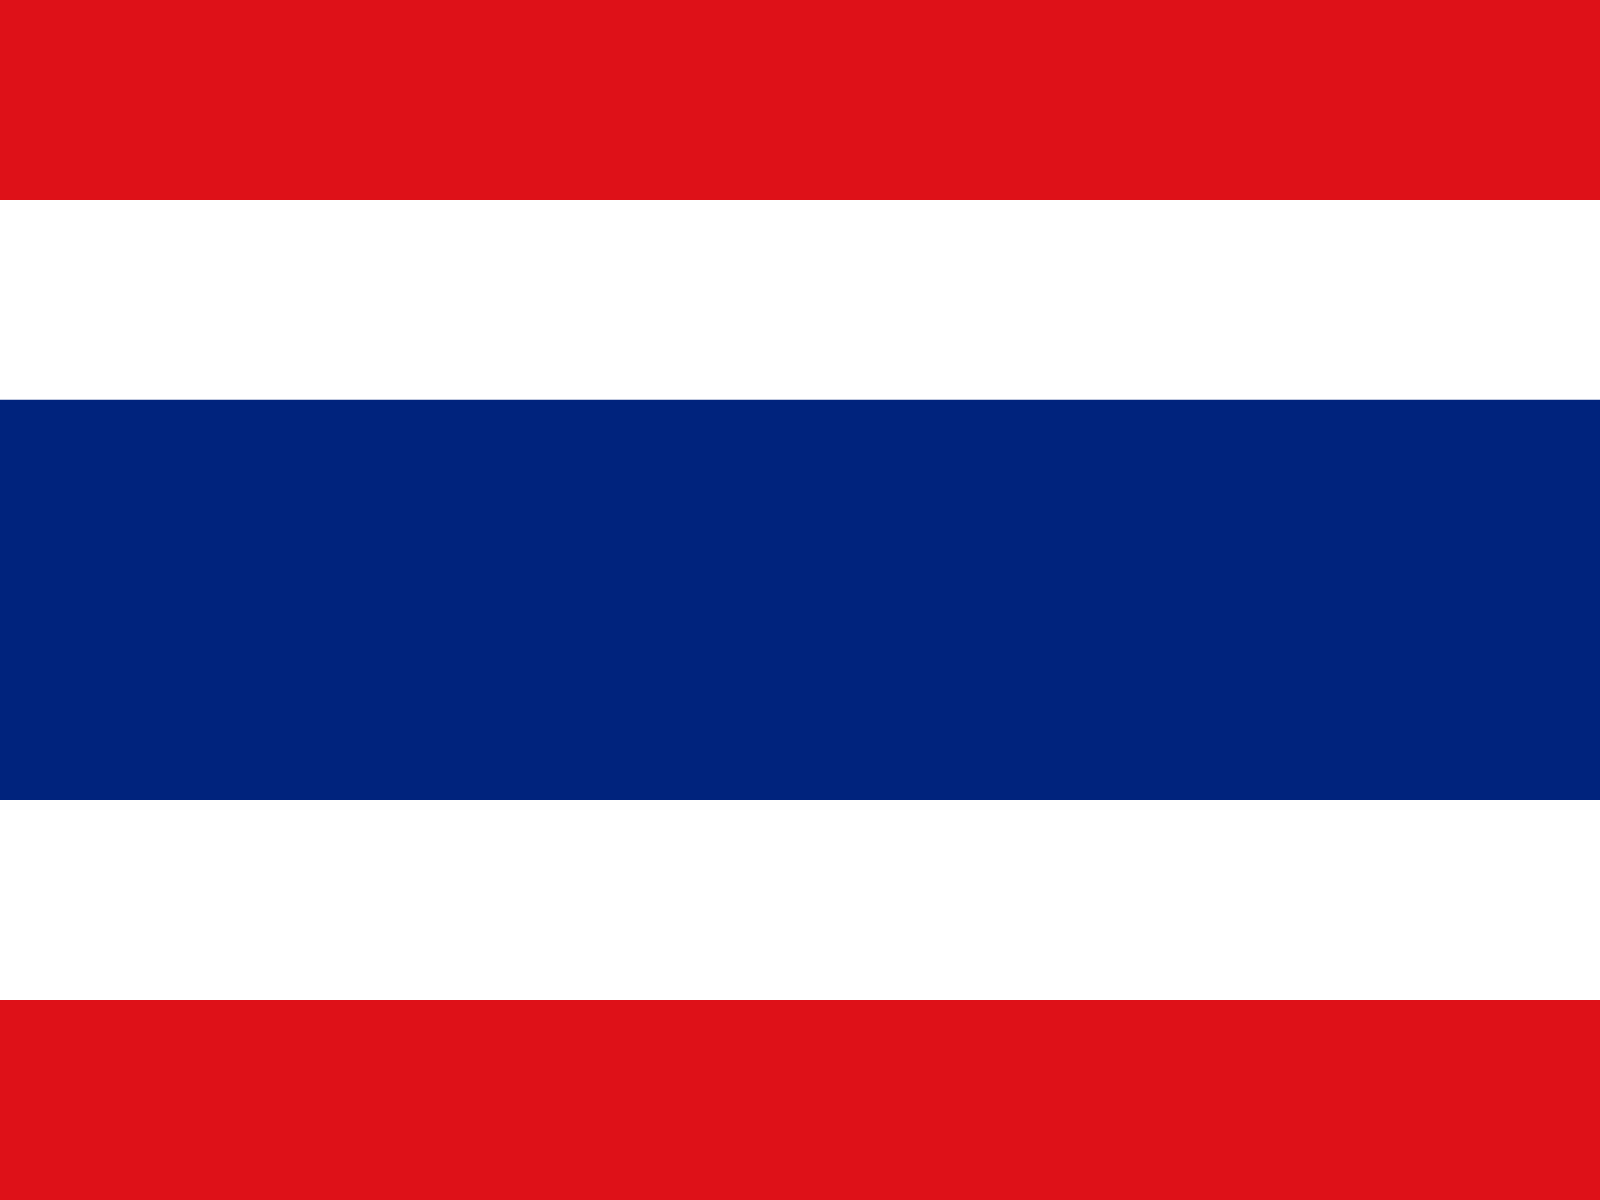 Flag of Thailand Powerpoint Backgrounds